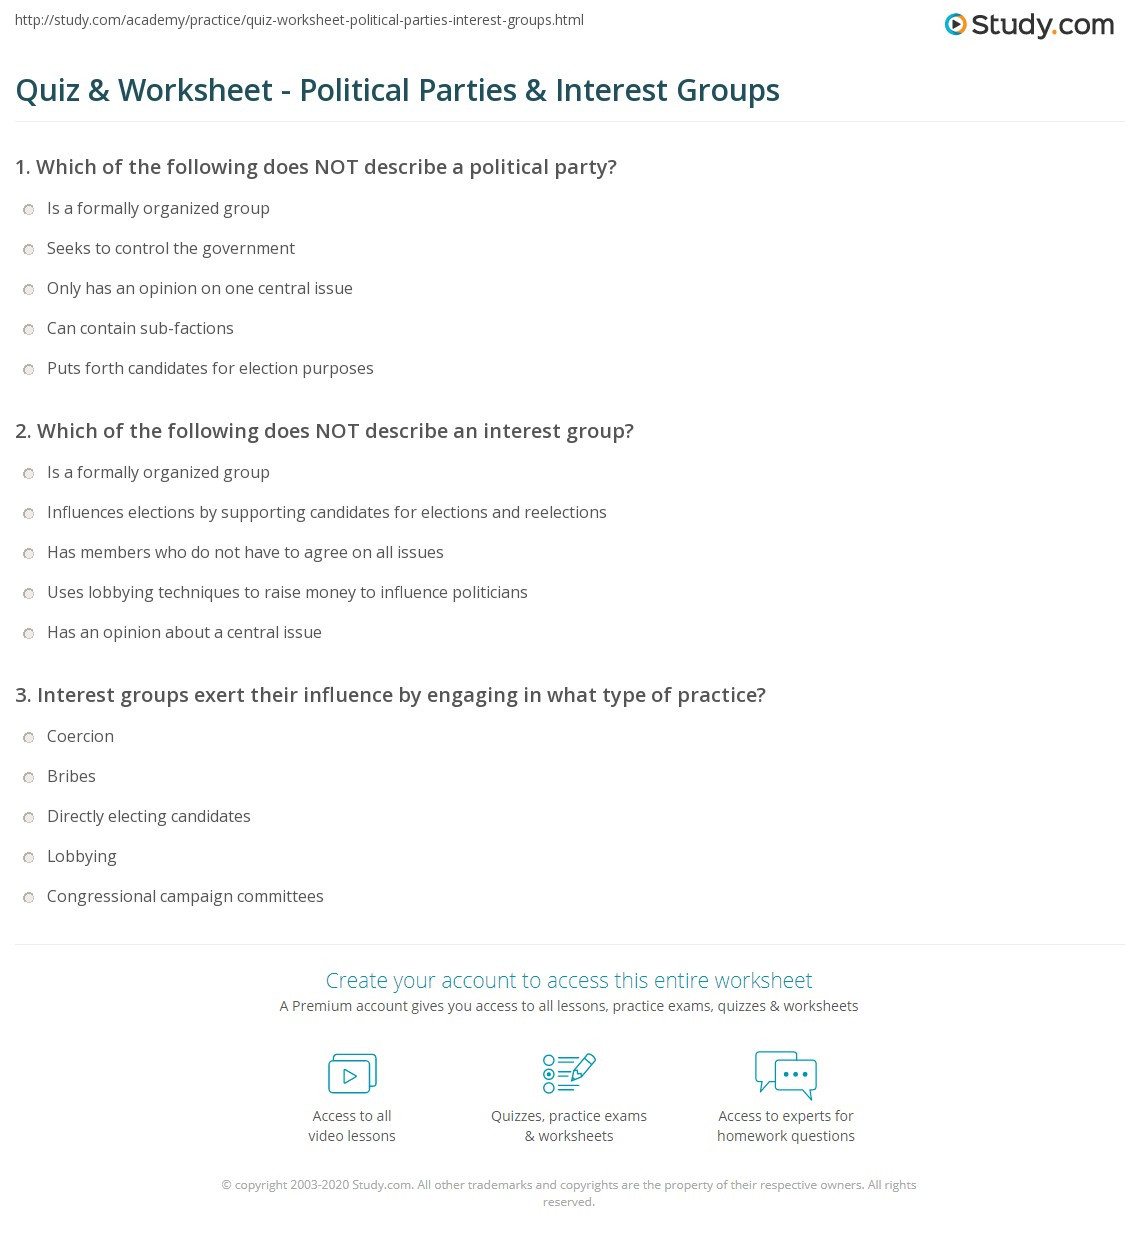 Equal Groups Worksheets 3rd Grade Missing Factor Practice Worksheet